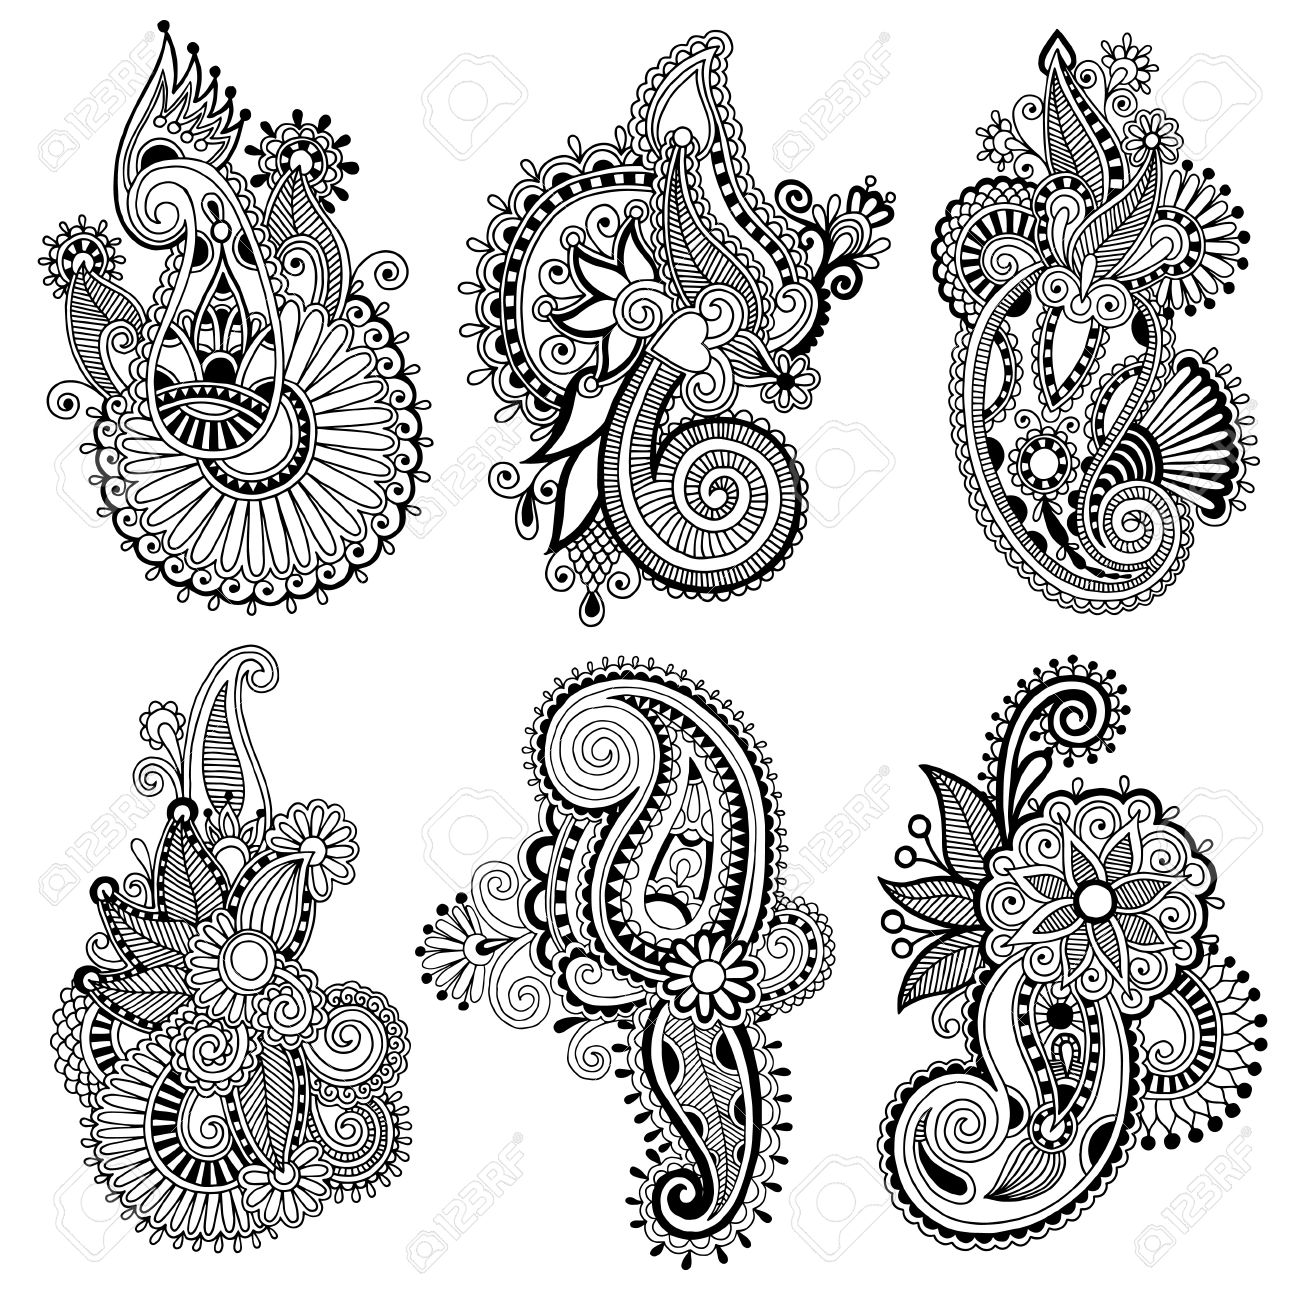 black line art ornate flower design collection, ukrainian ethnic style, autotrace of hand drawing Stock Vector - 21758719